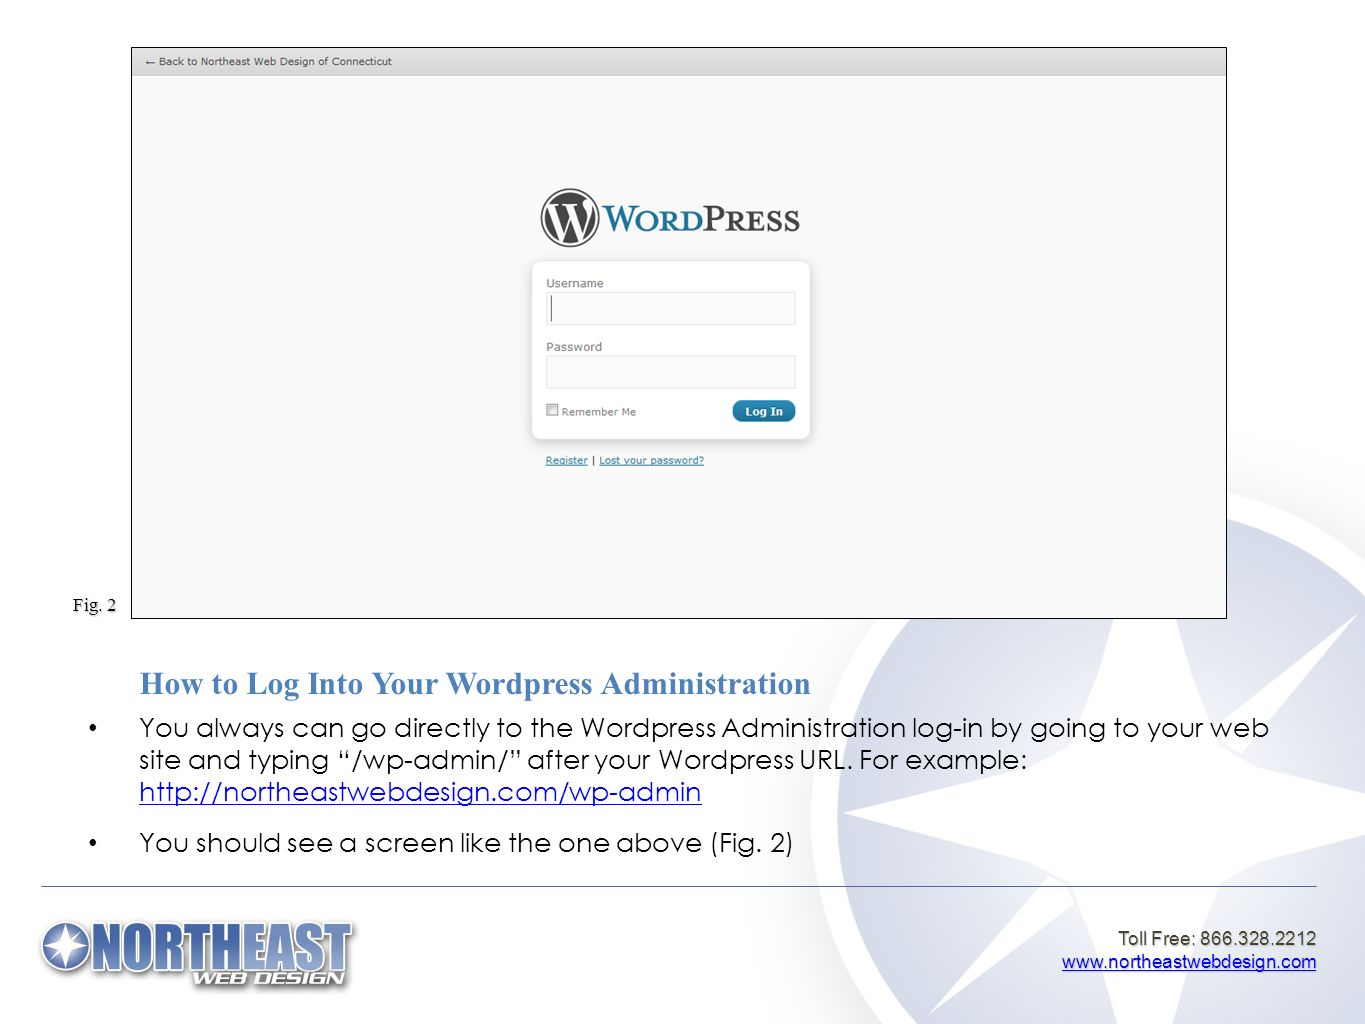 Toll Free: 866.328.2212 www.northeastwebdesign.com www.northeastwebdesign.com How to Log Into Your Wordpress Administration You always can go directly to the Wordpress Administration log-in by going to your web site and typing /wp-admin/ after your Wordpress URL.